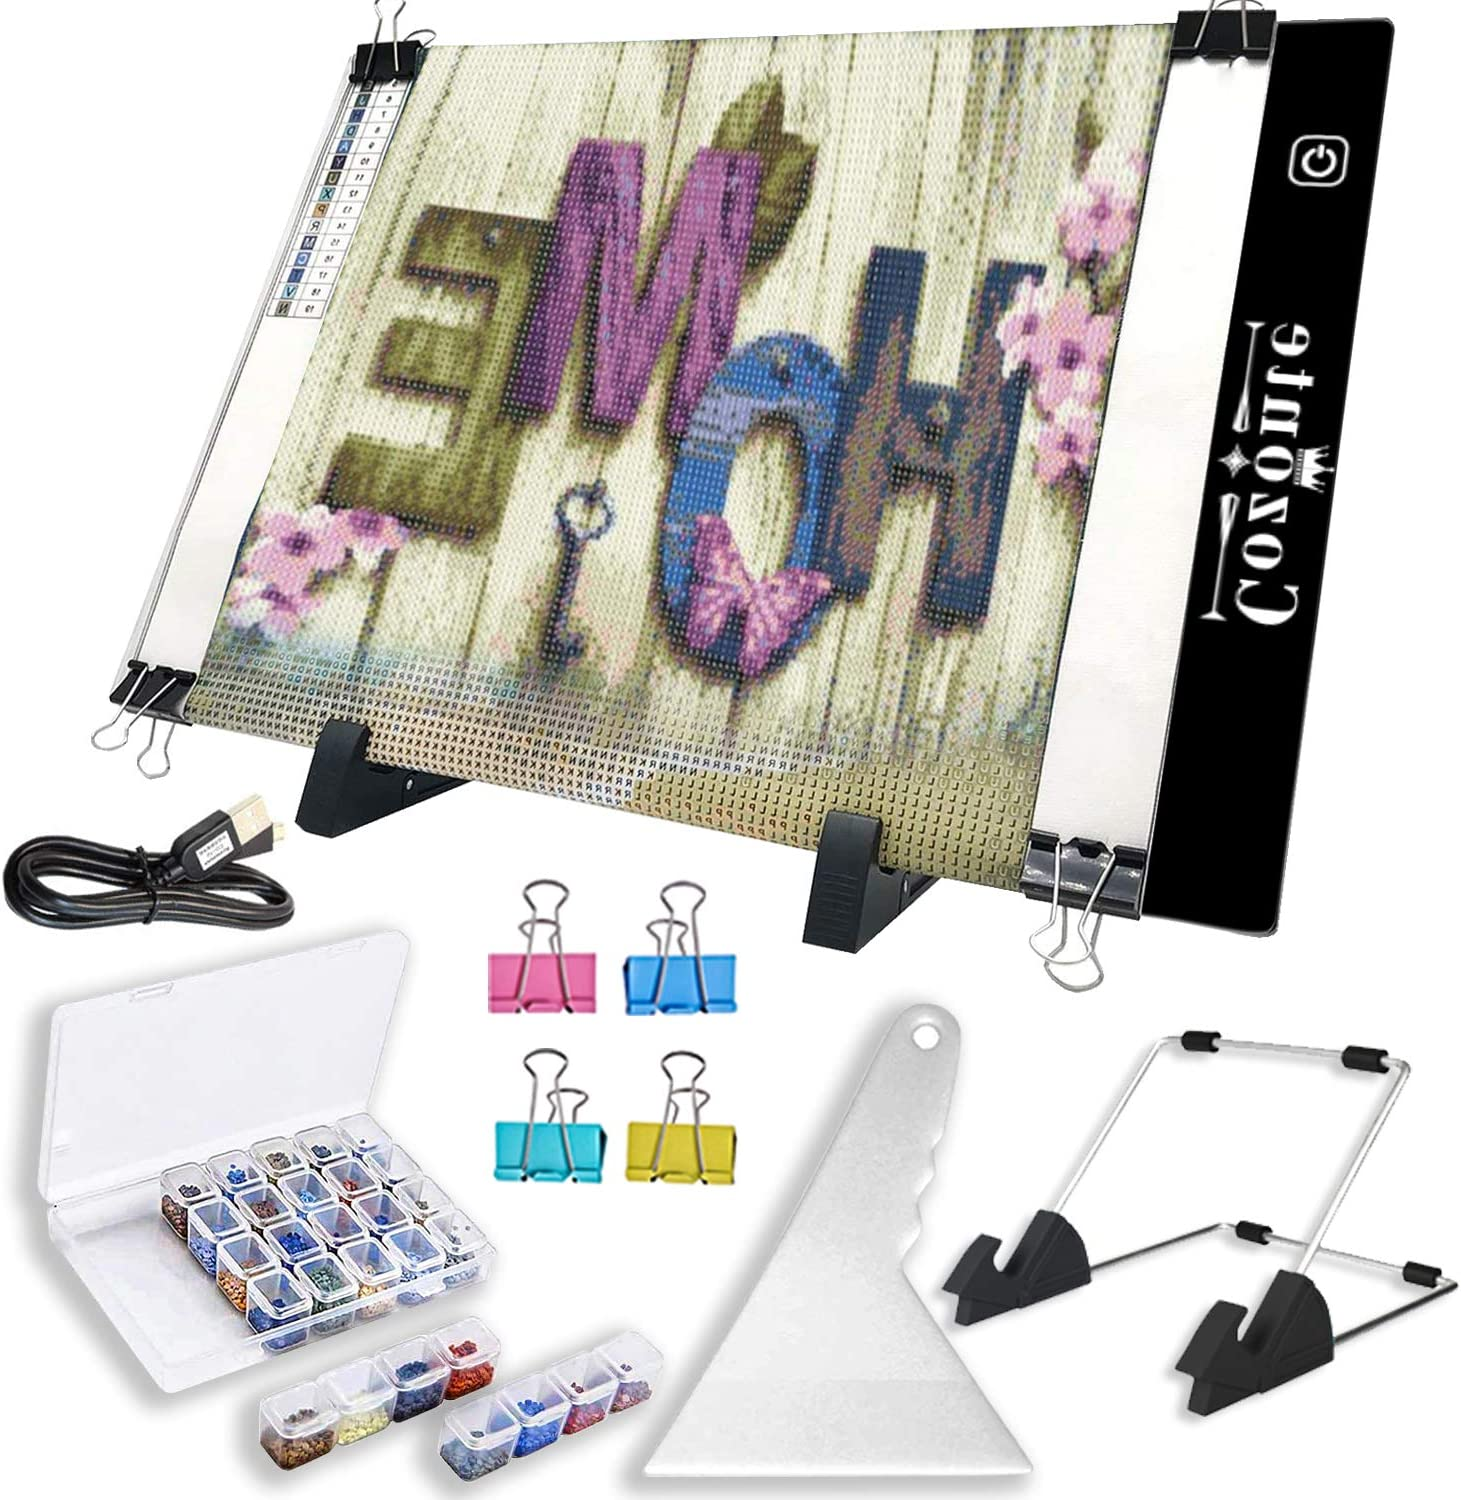 Diamond Painting Accessories A3 Light Box X-ray Viewing et. Designing Cozonte Ultra-Thin A3 LED Light Pad Third Level Touch Dimmer 12W Super Bright Light for Diamond Painting Sketching